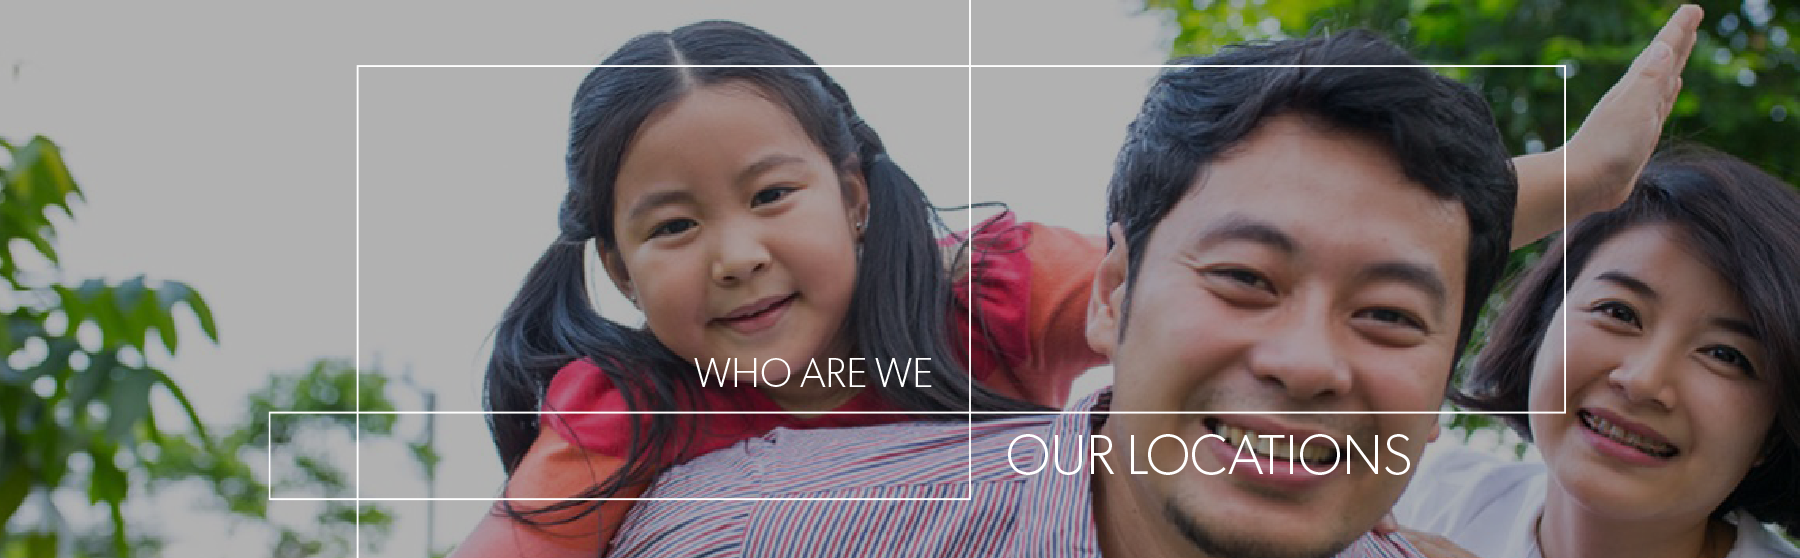 WHO ARE WE LOCATIONS copy